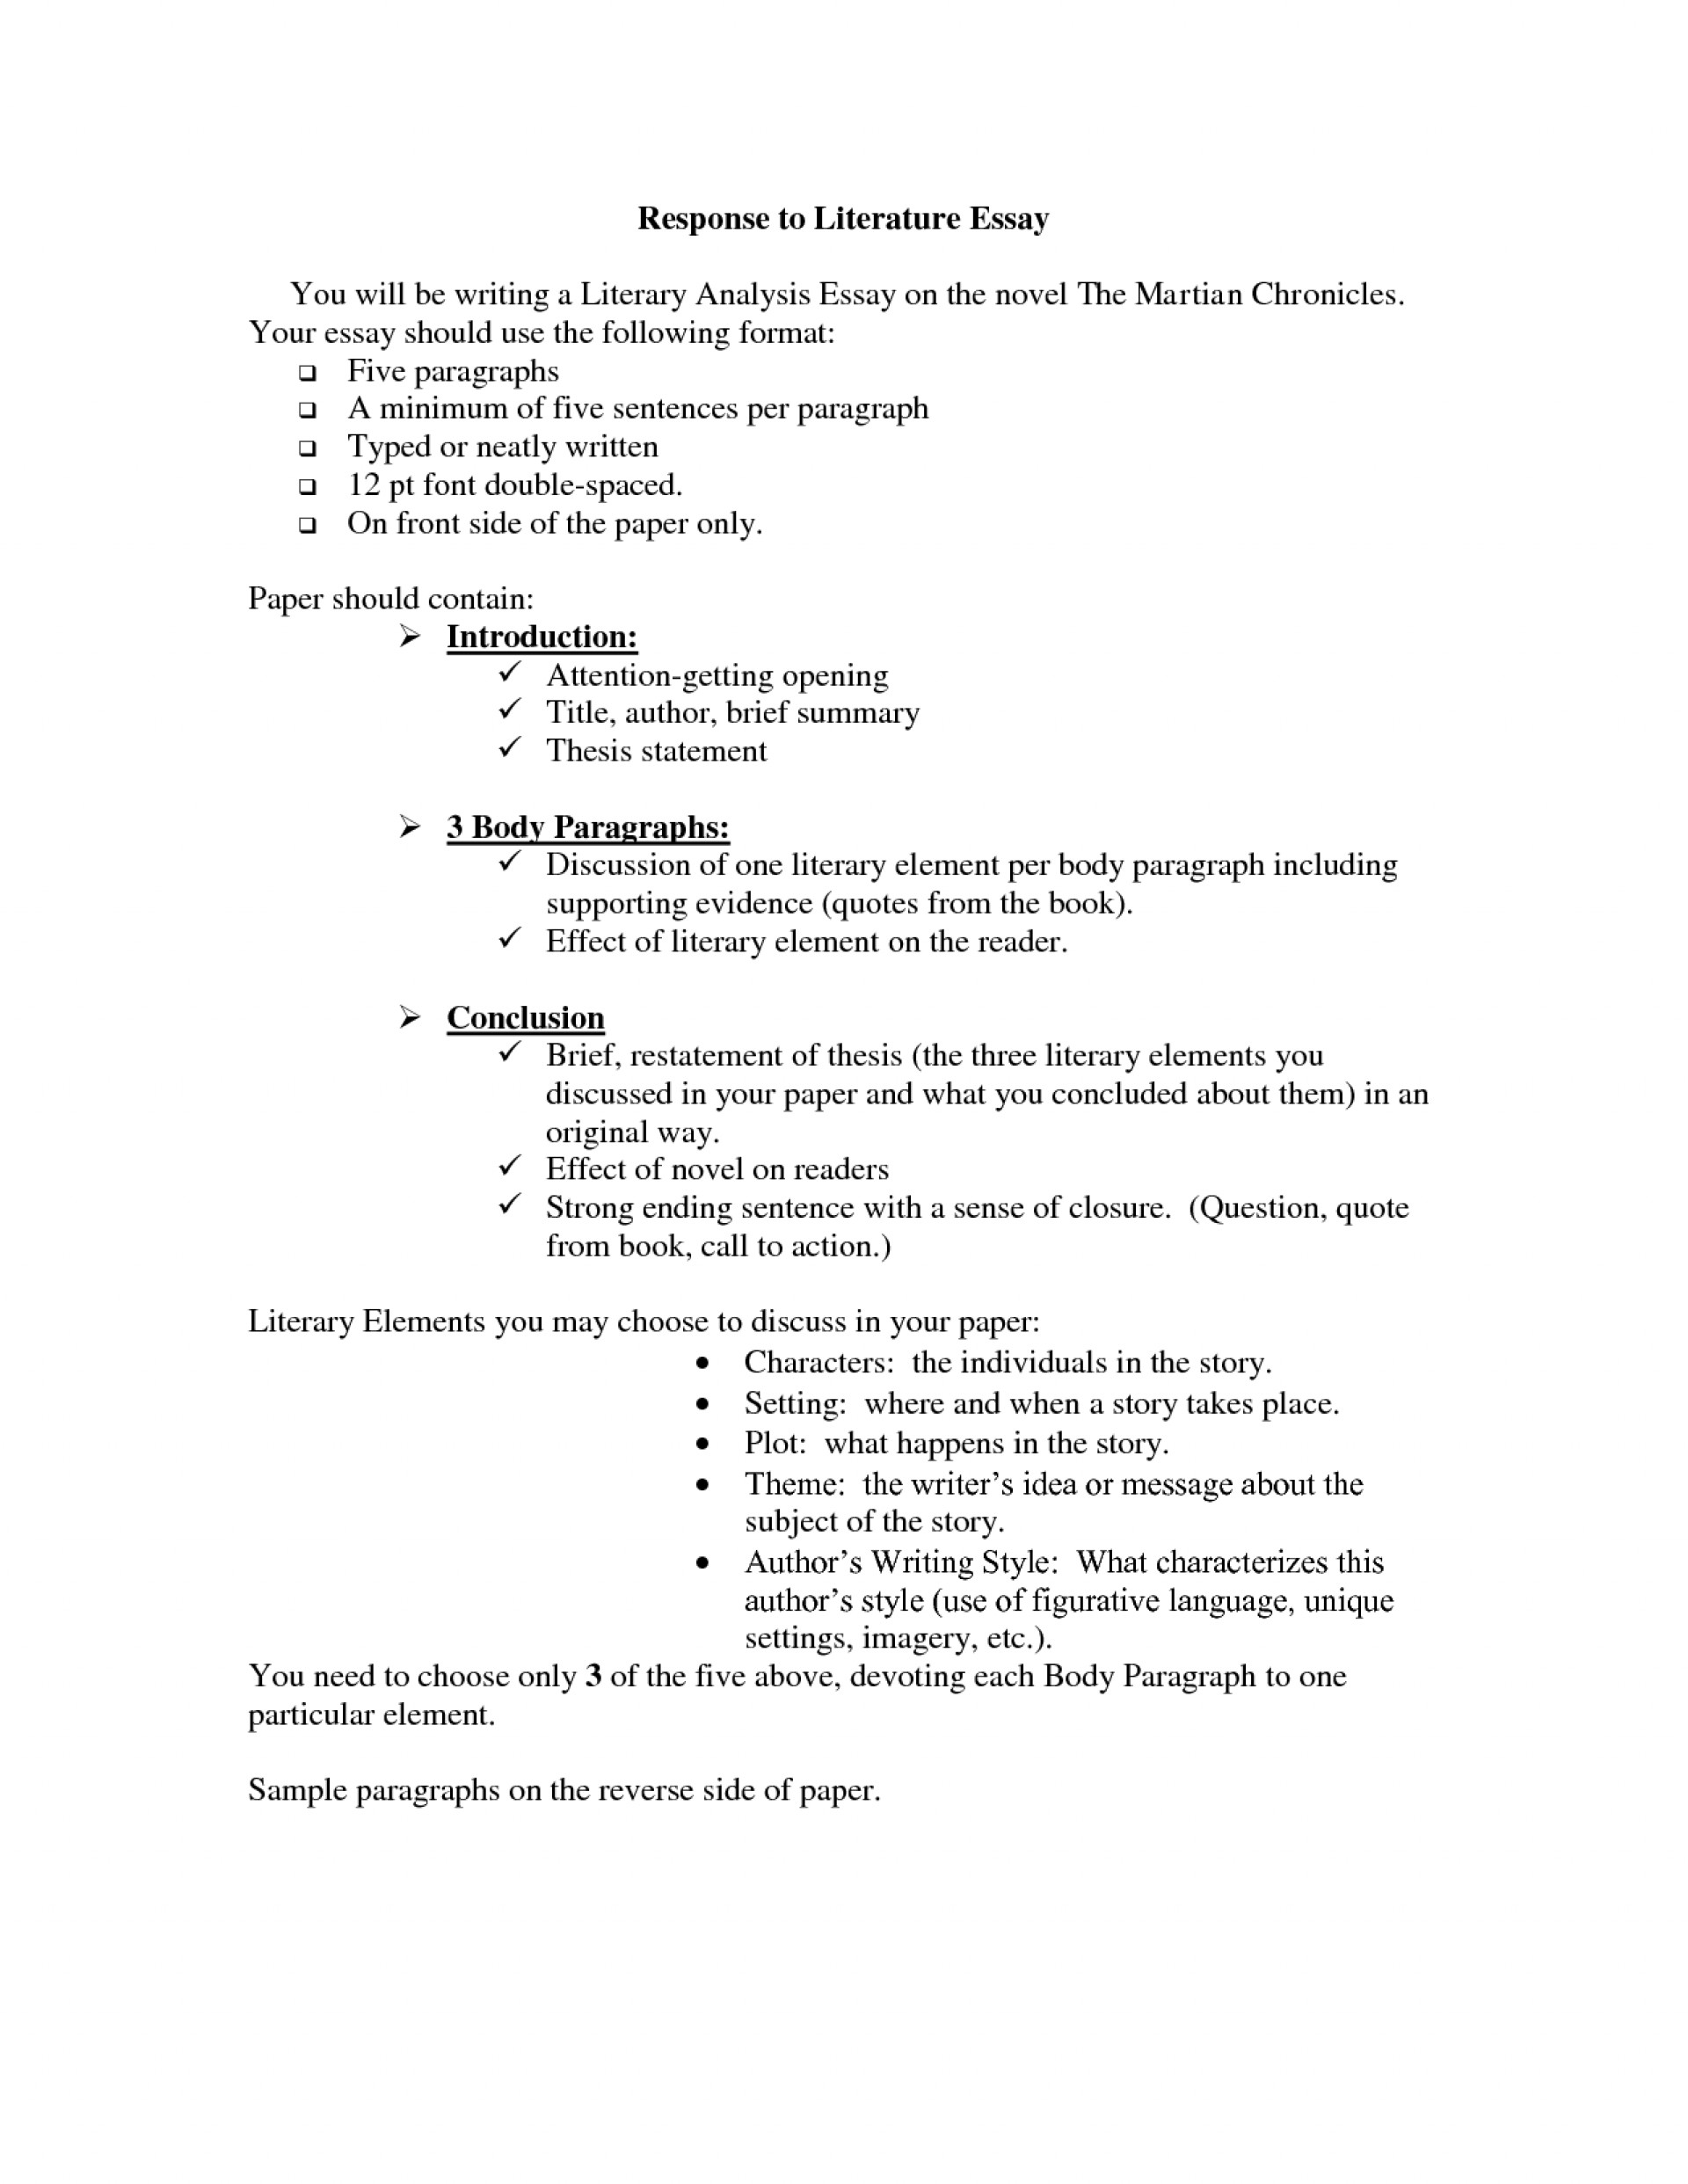 Cheap college critical analysis essay examples rfp cover letter response